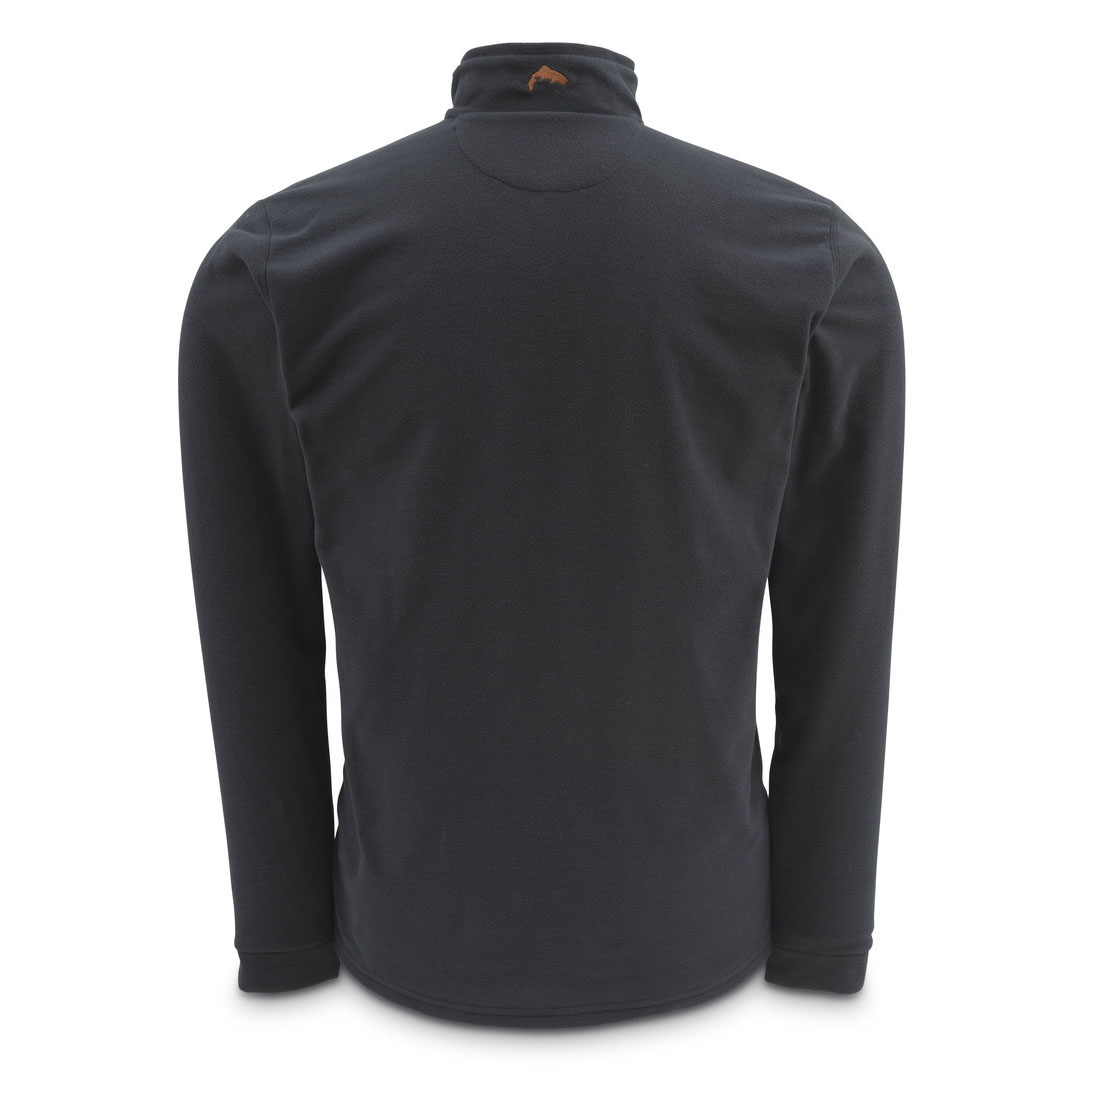 Jersey WaderWick Simms Thermal Top